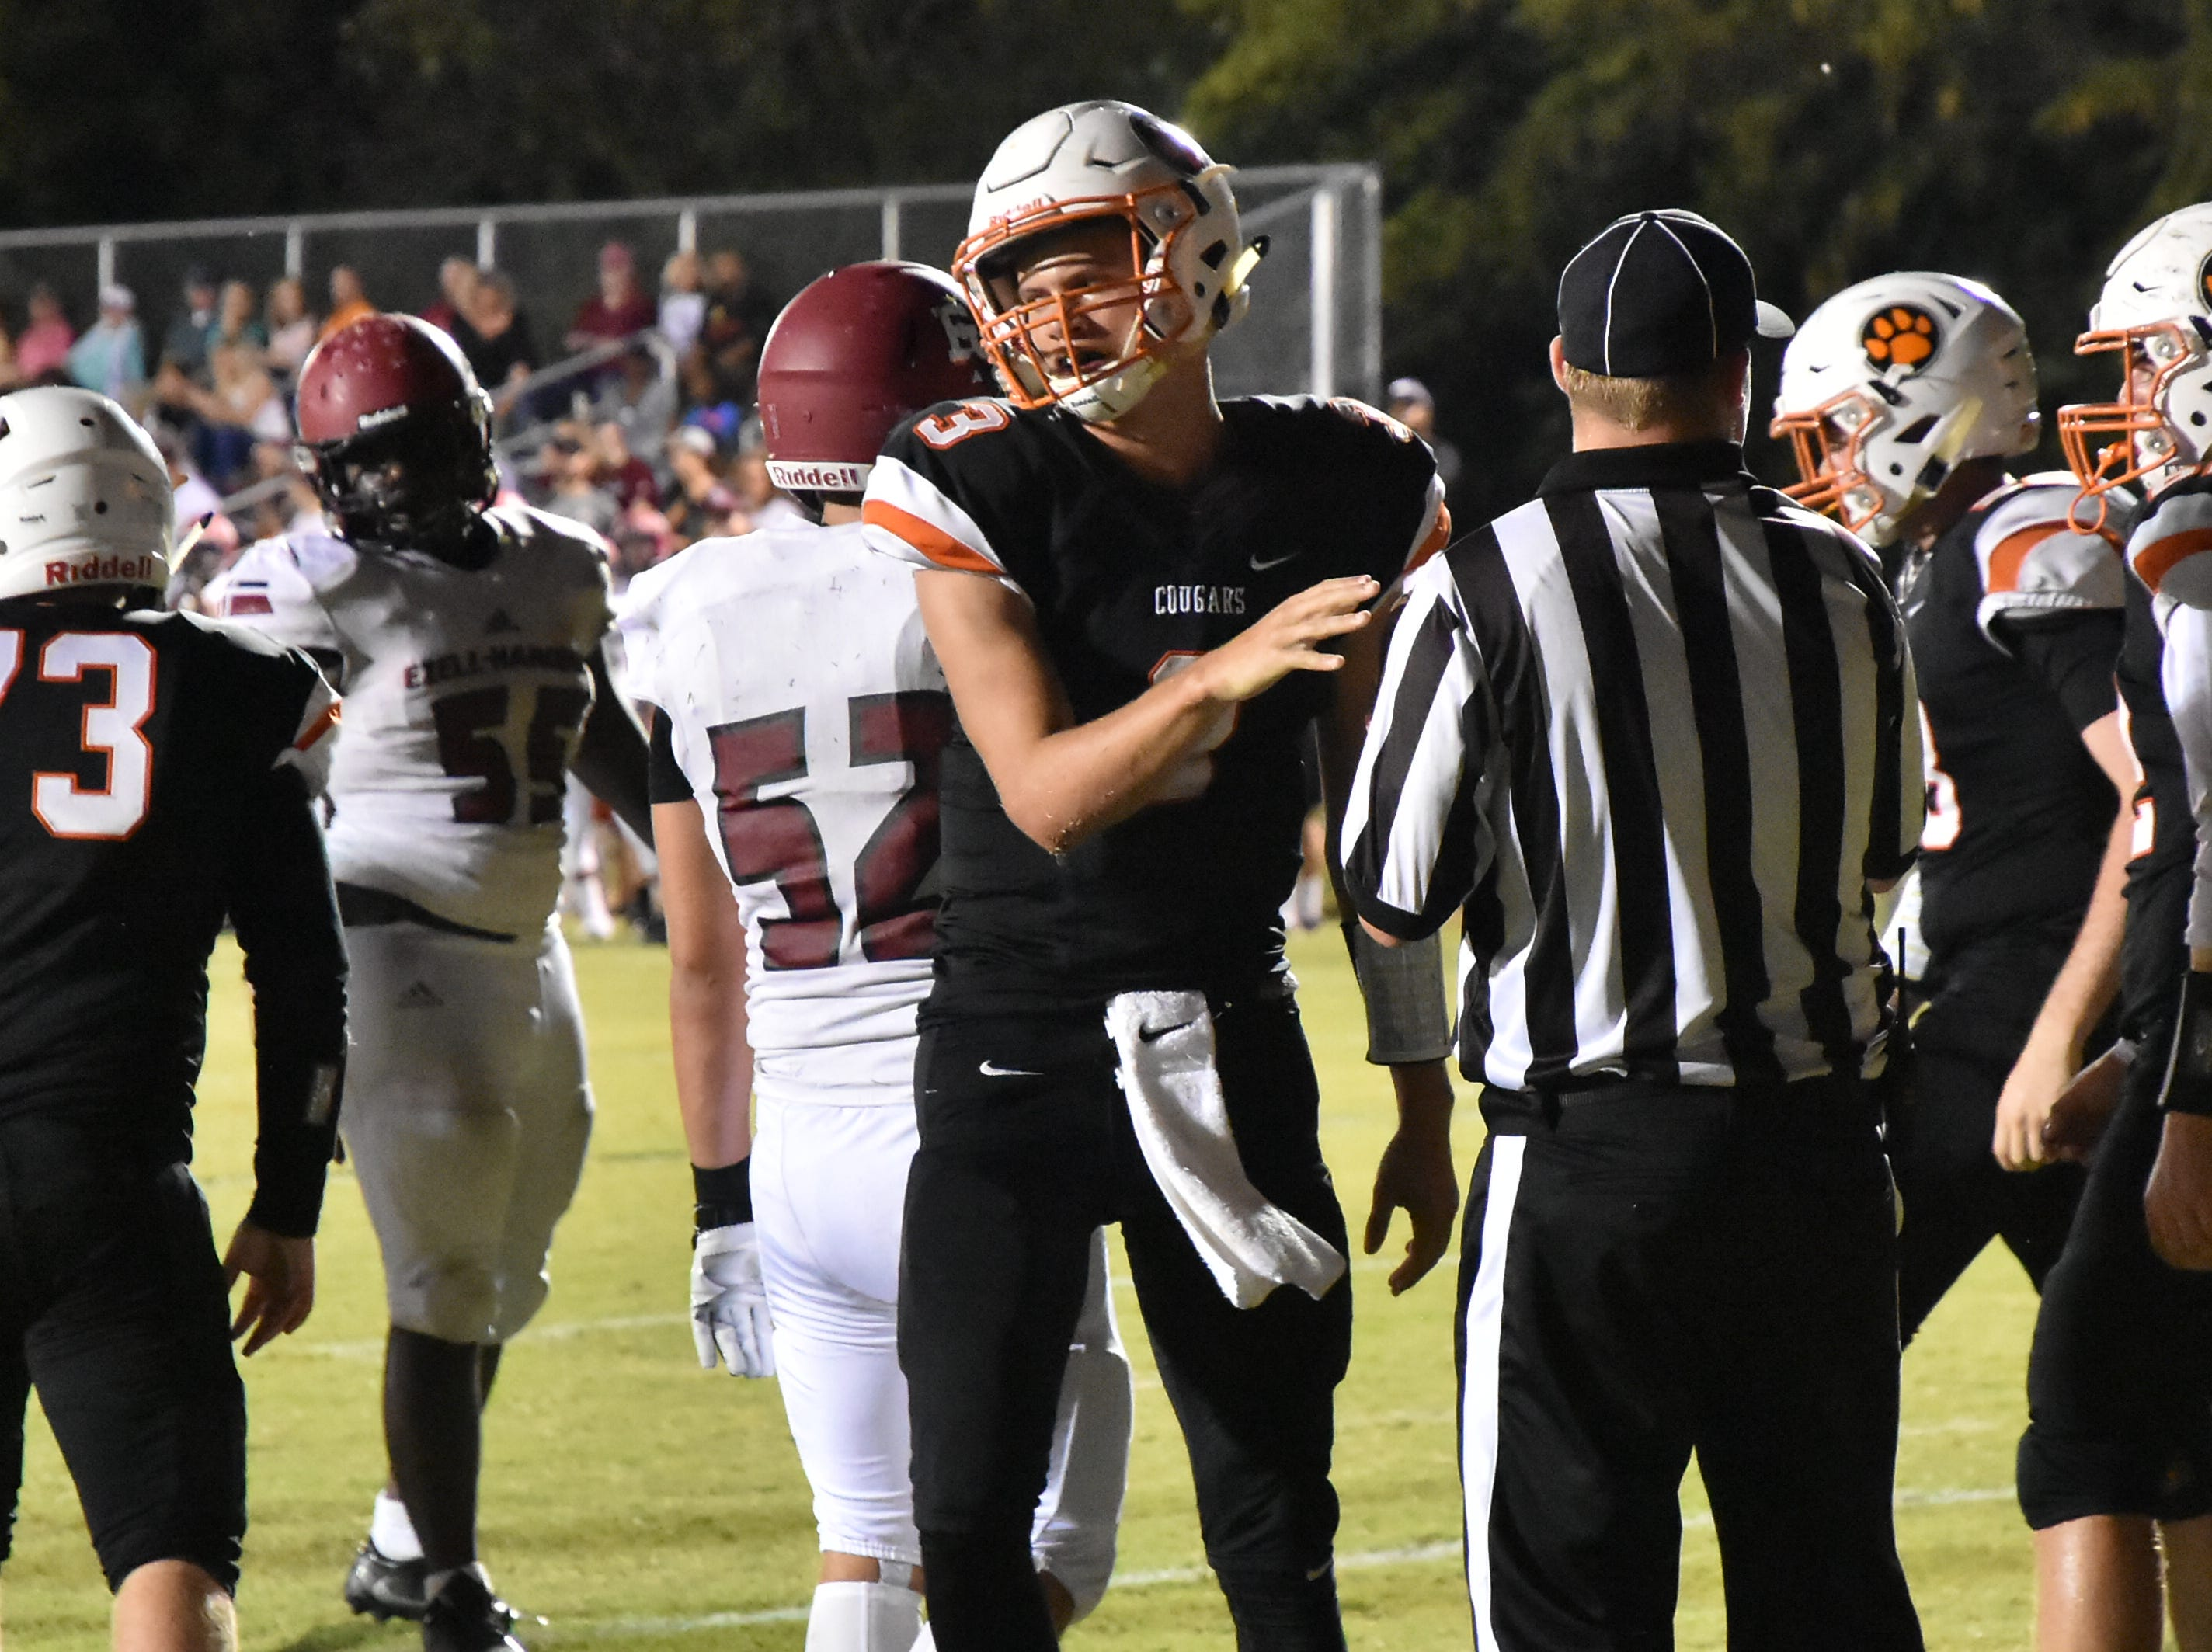 MTCS QB Jackson Green hands the ball to an official after rushing for a TD Friday night against Ezell-Harding.